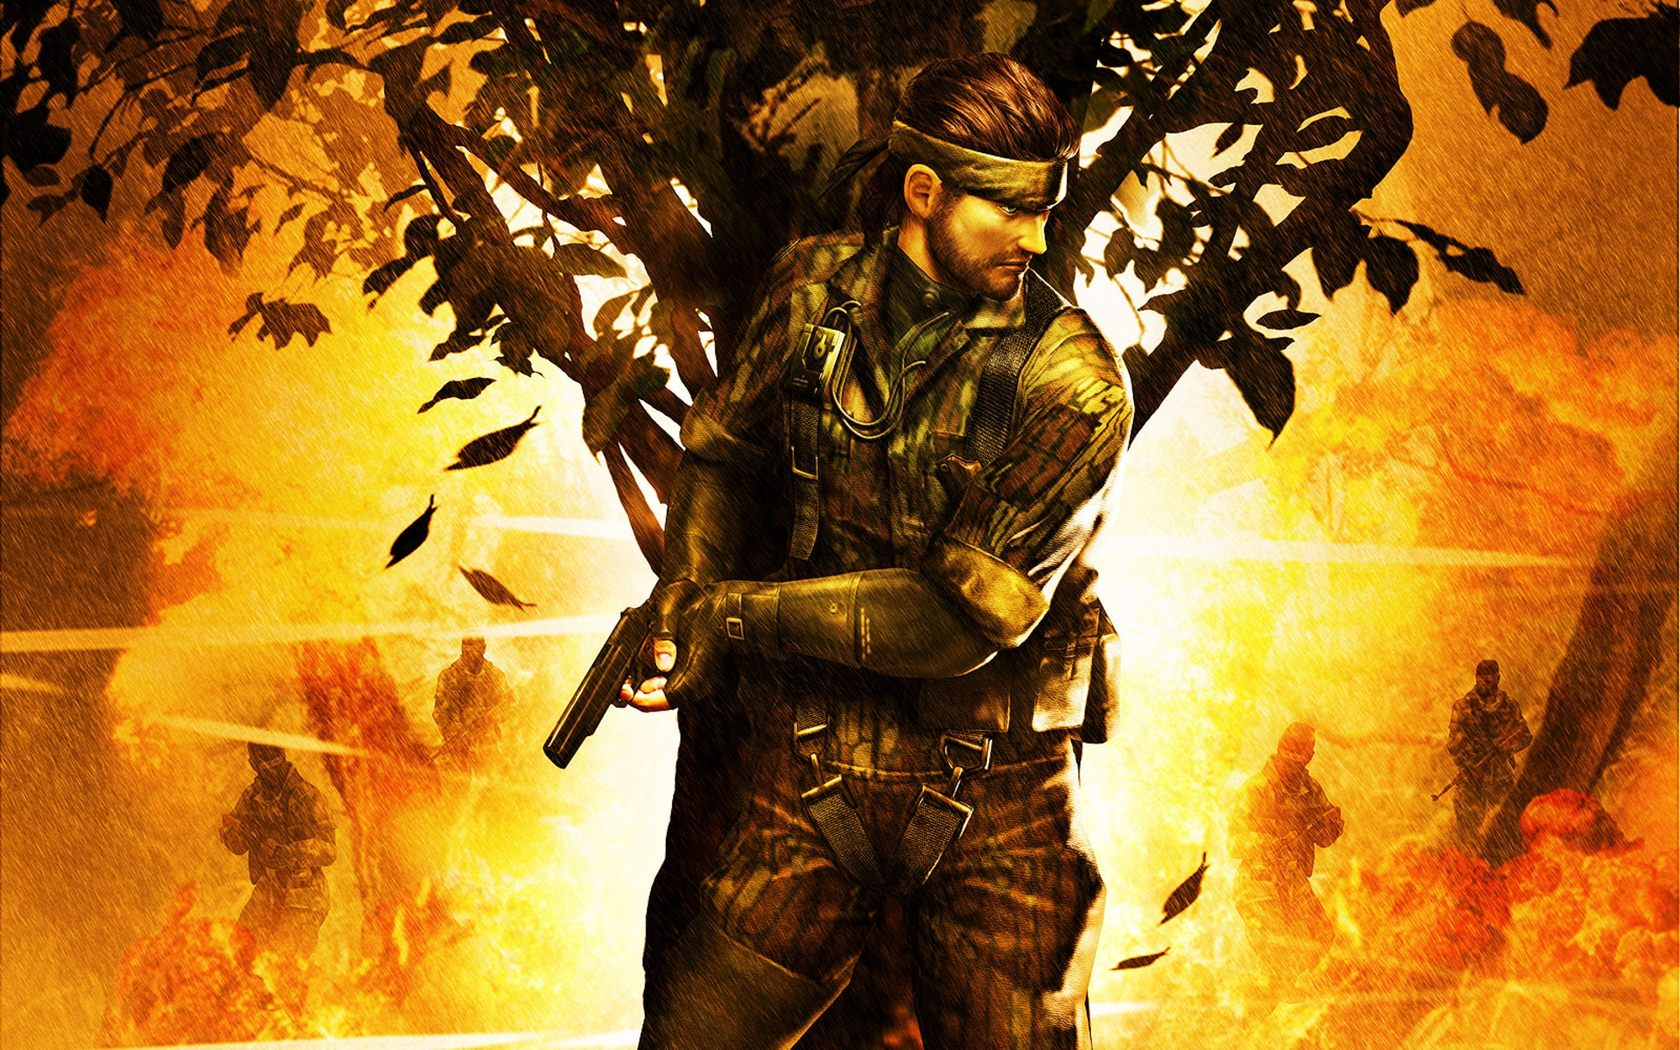 metal-gear-solid-3-snake-eater-game-wallpaper-1680x1050-48